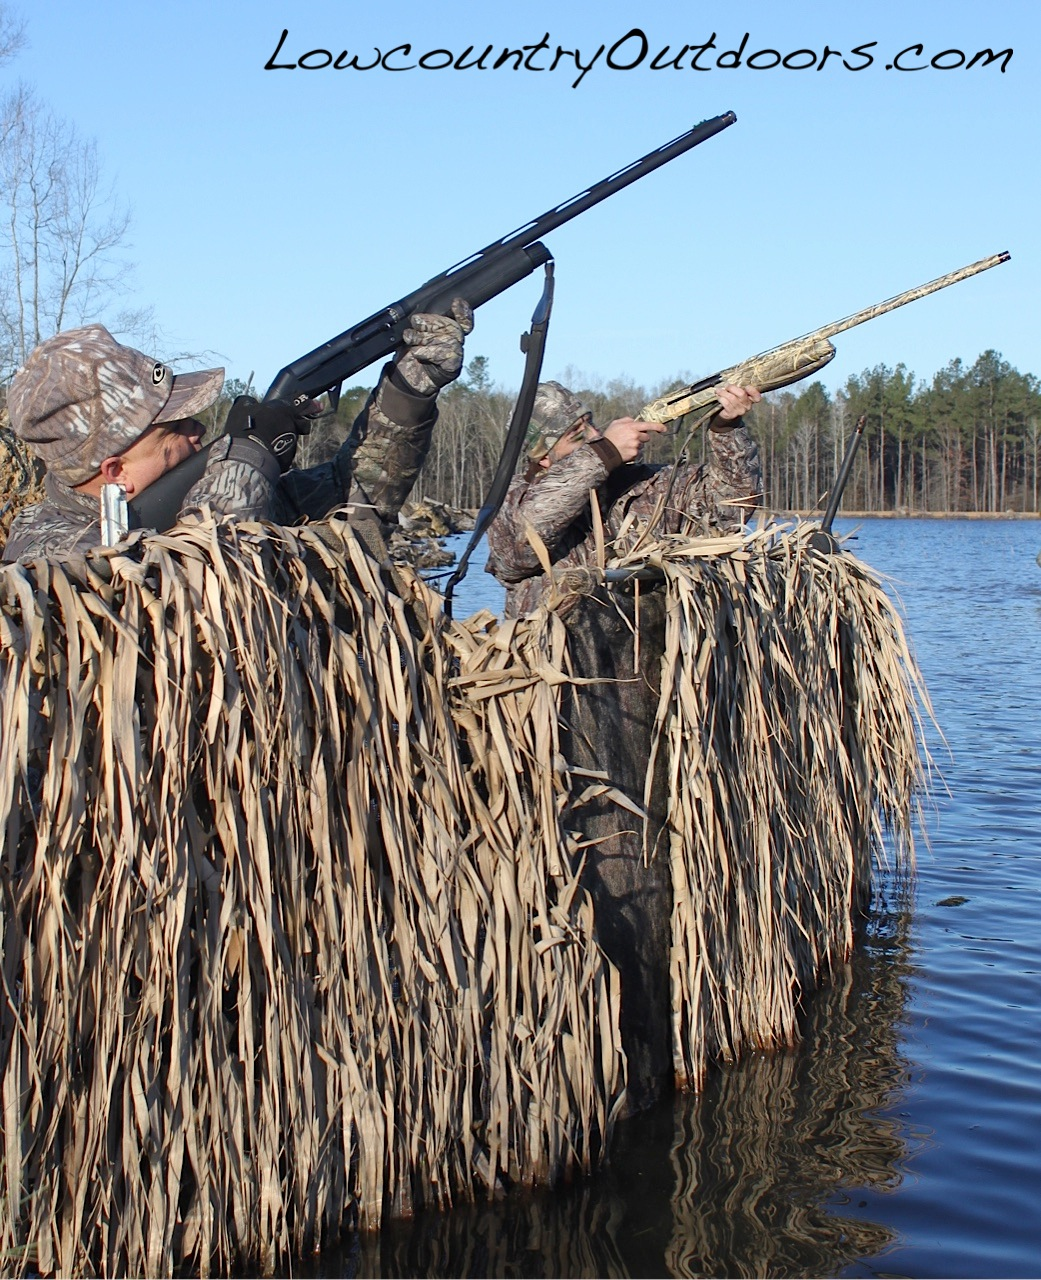 SCDNR WMA REGULAR SEASON WATERFOWL HARVEST SUMMARY